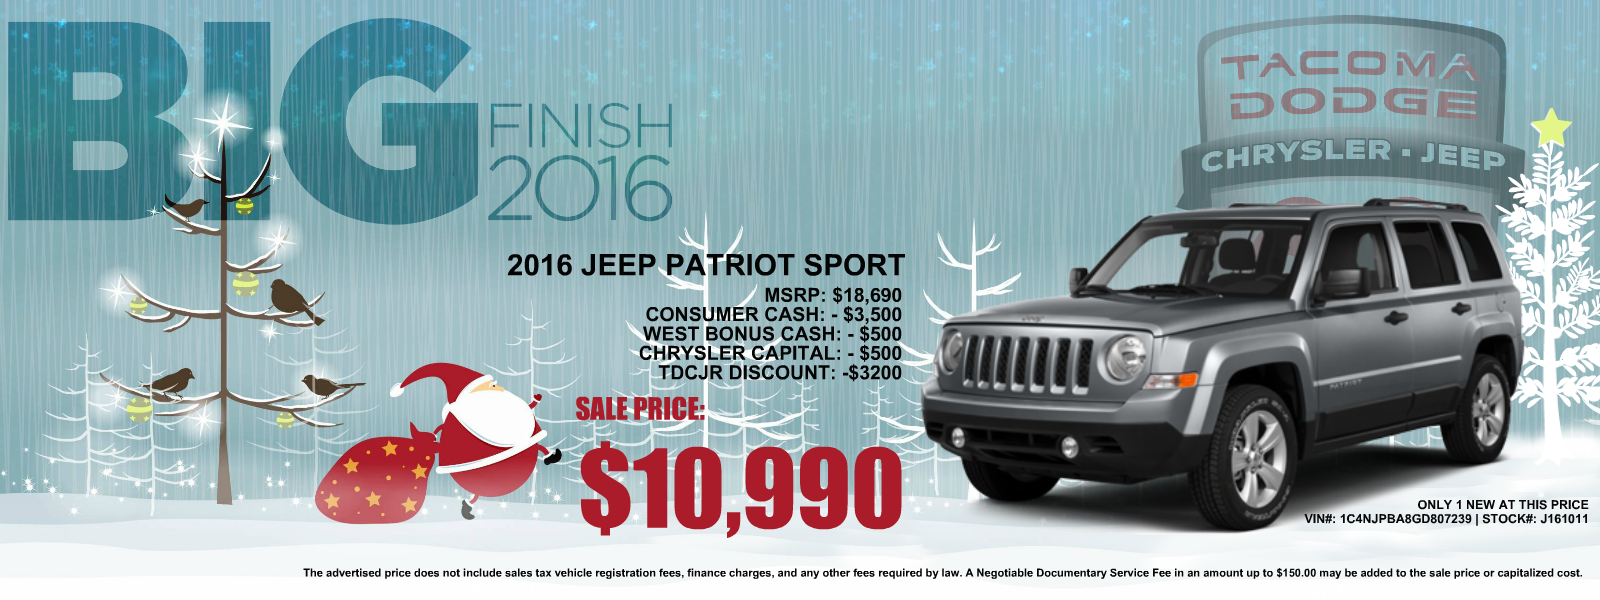 Jeep Patriot for Sale in the Puyallup and Seattle area at Tacoma Dodge, WA